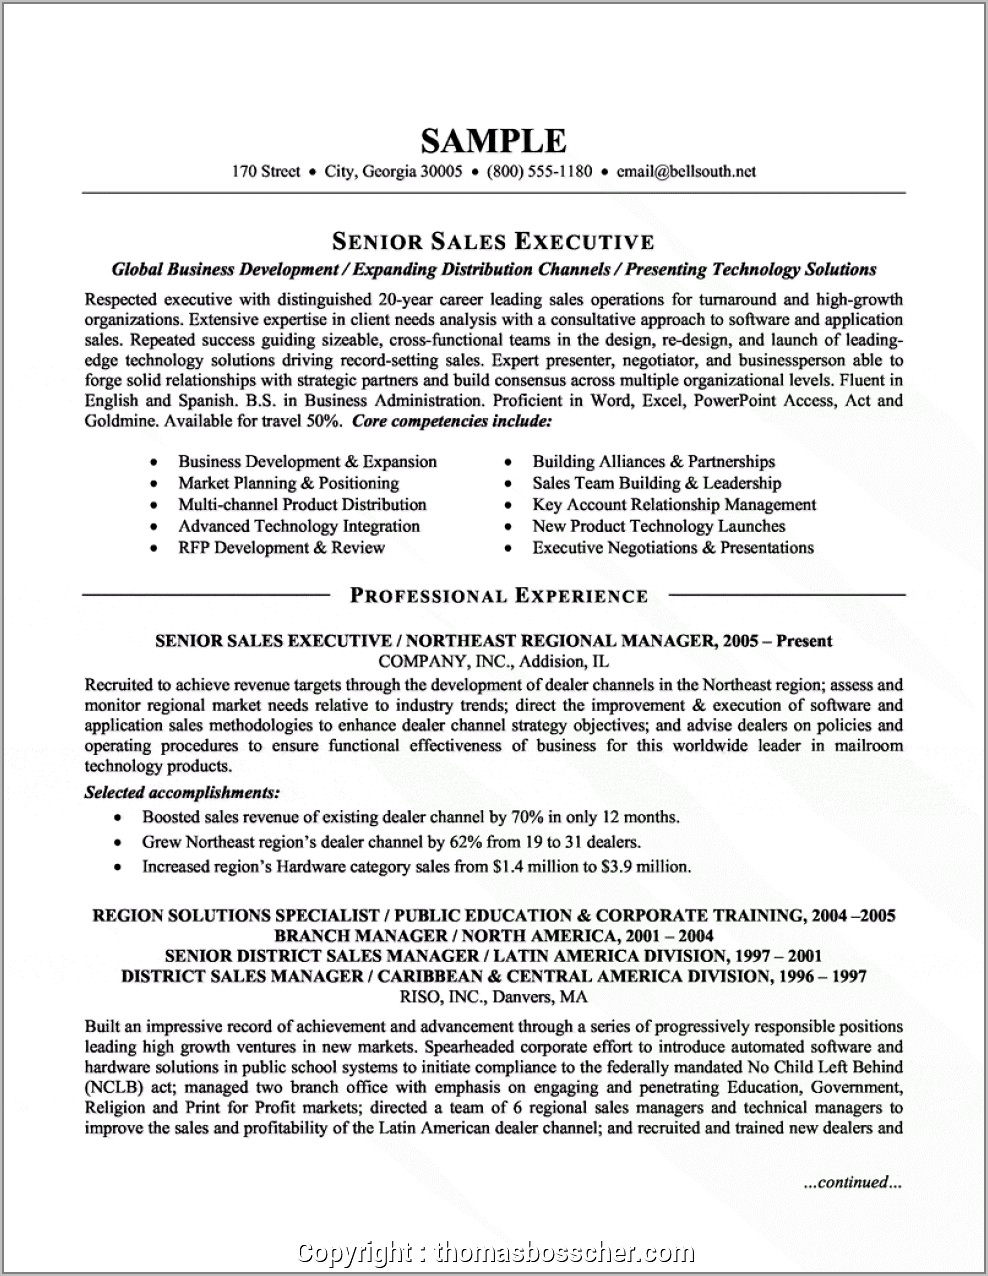 Sales Manager Resume Format India